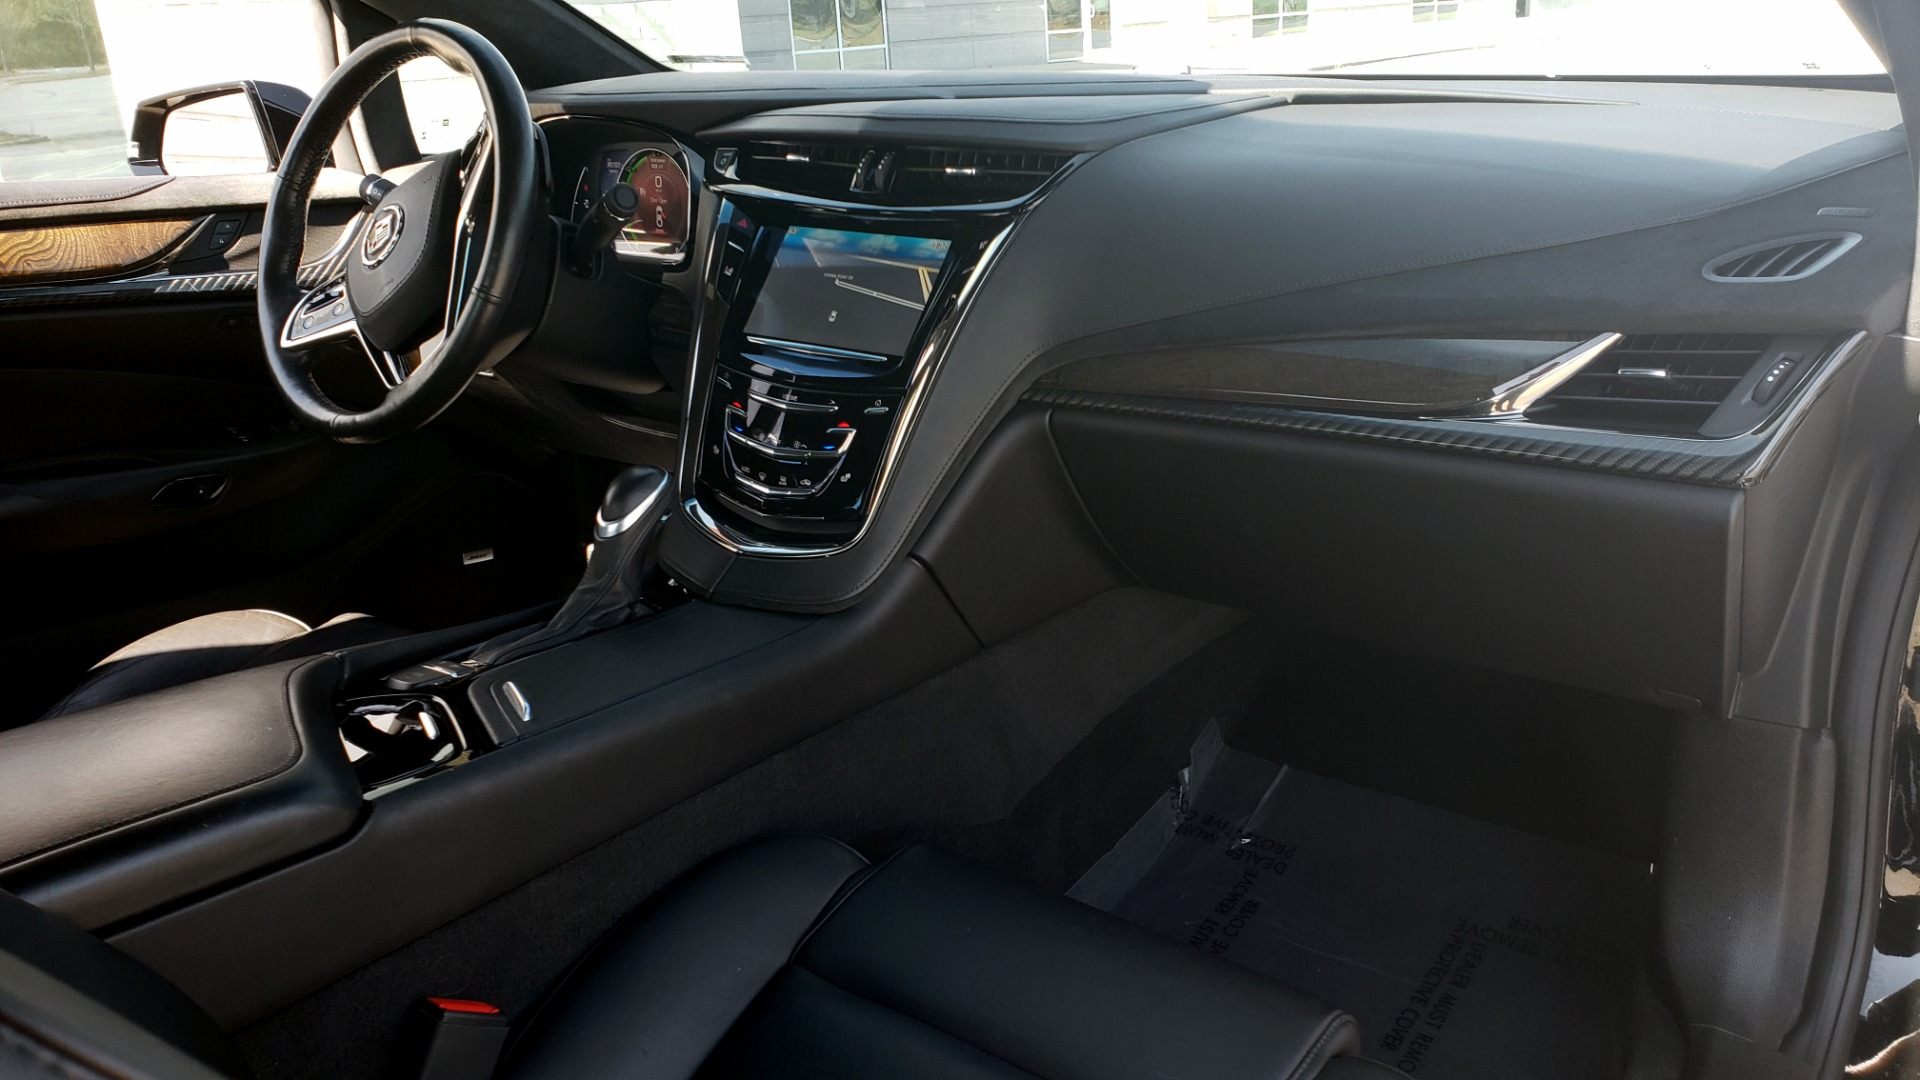 Used 2014 Cadillac ELR 2DR COUPE / HYBRID / NAV / BOSE / HEATED SEATS / REARVIEW for sale $19,995 at Formula Imports in Charlotte NC 28227 71